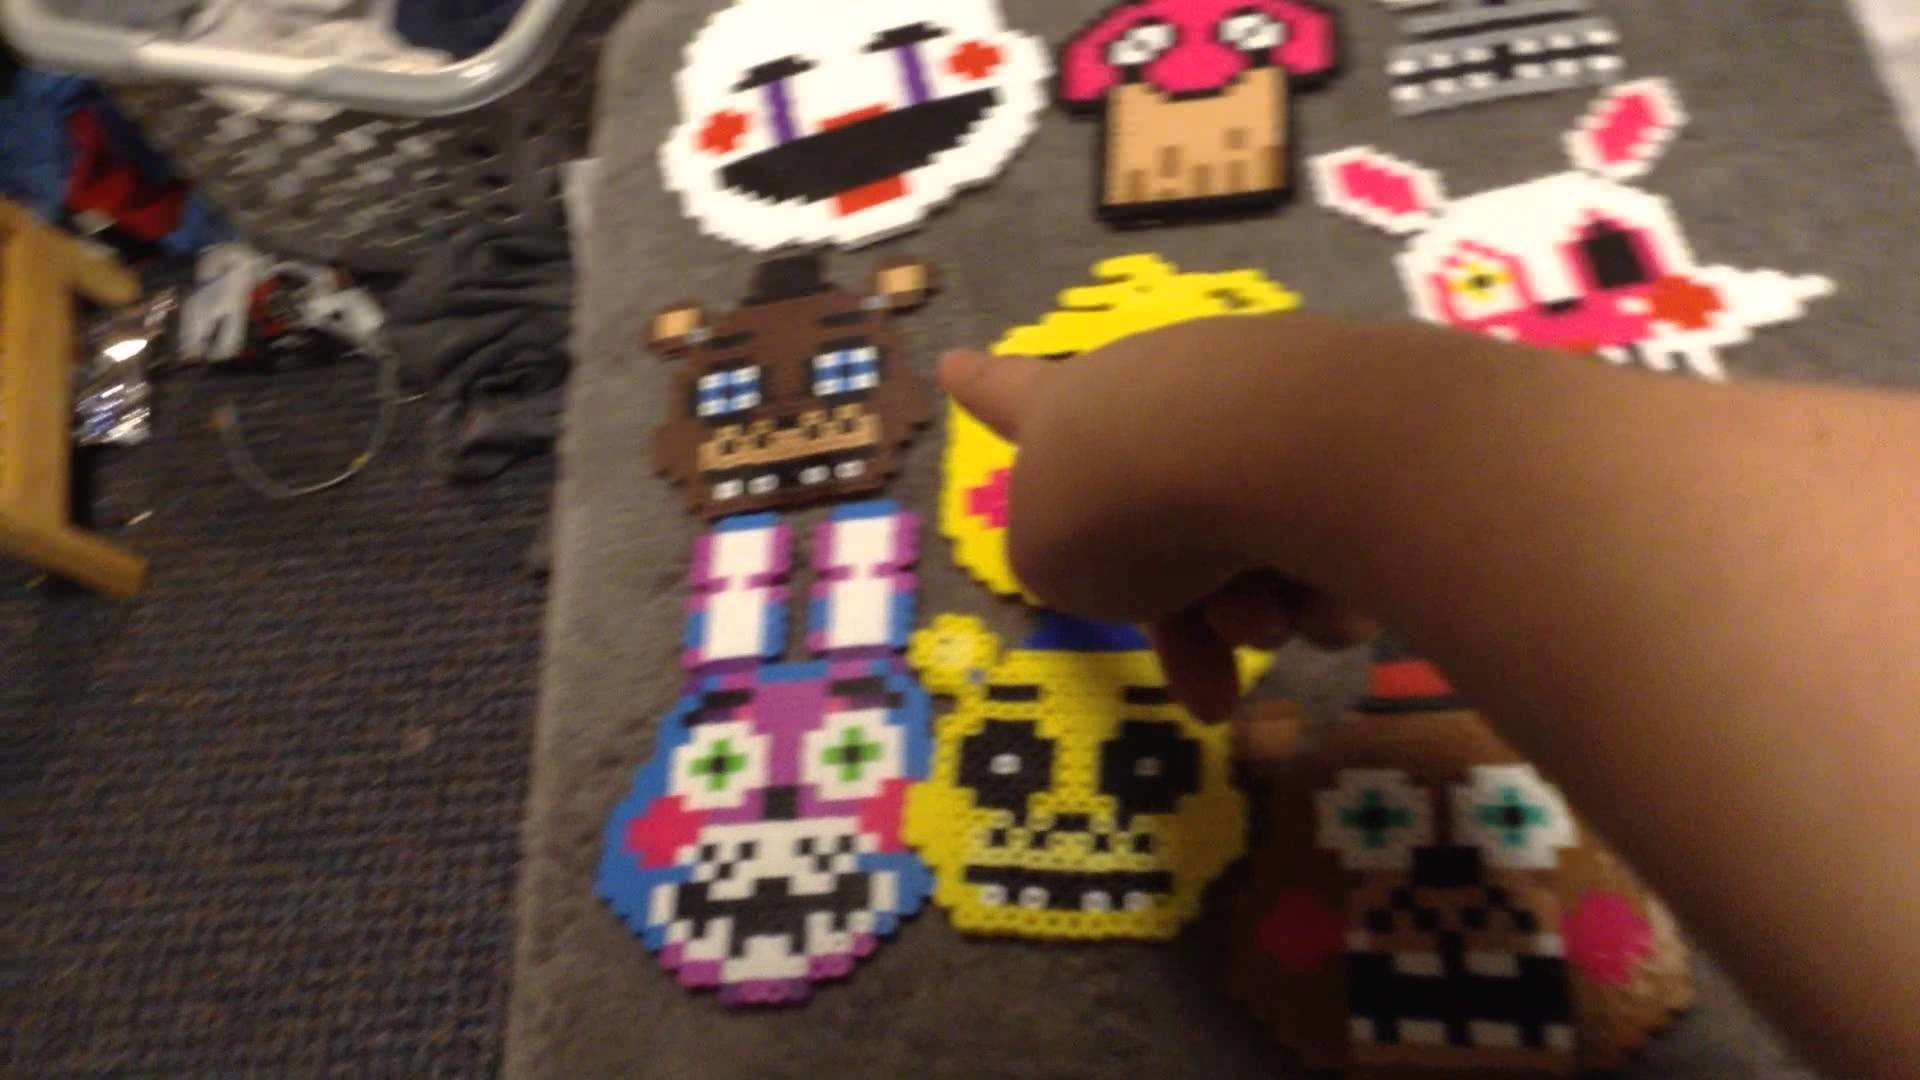 Five nights at freddys perler beads collection so far more to come soon